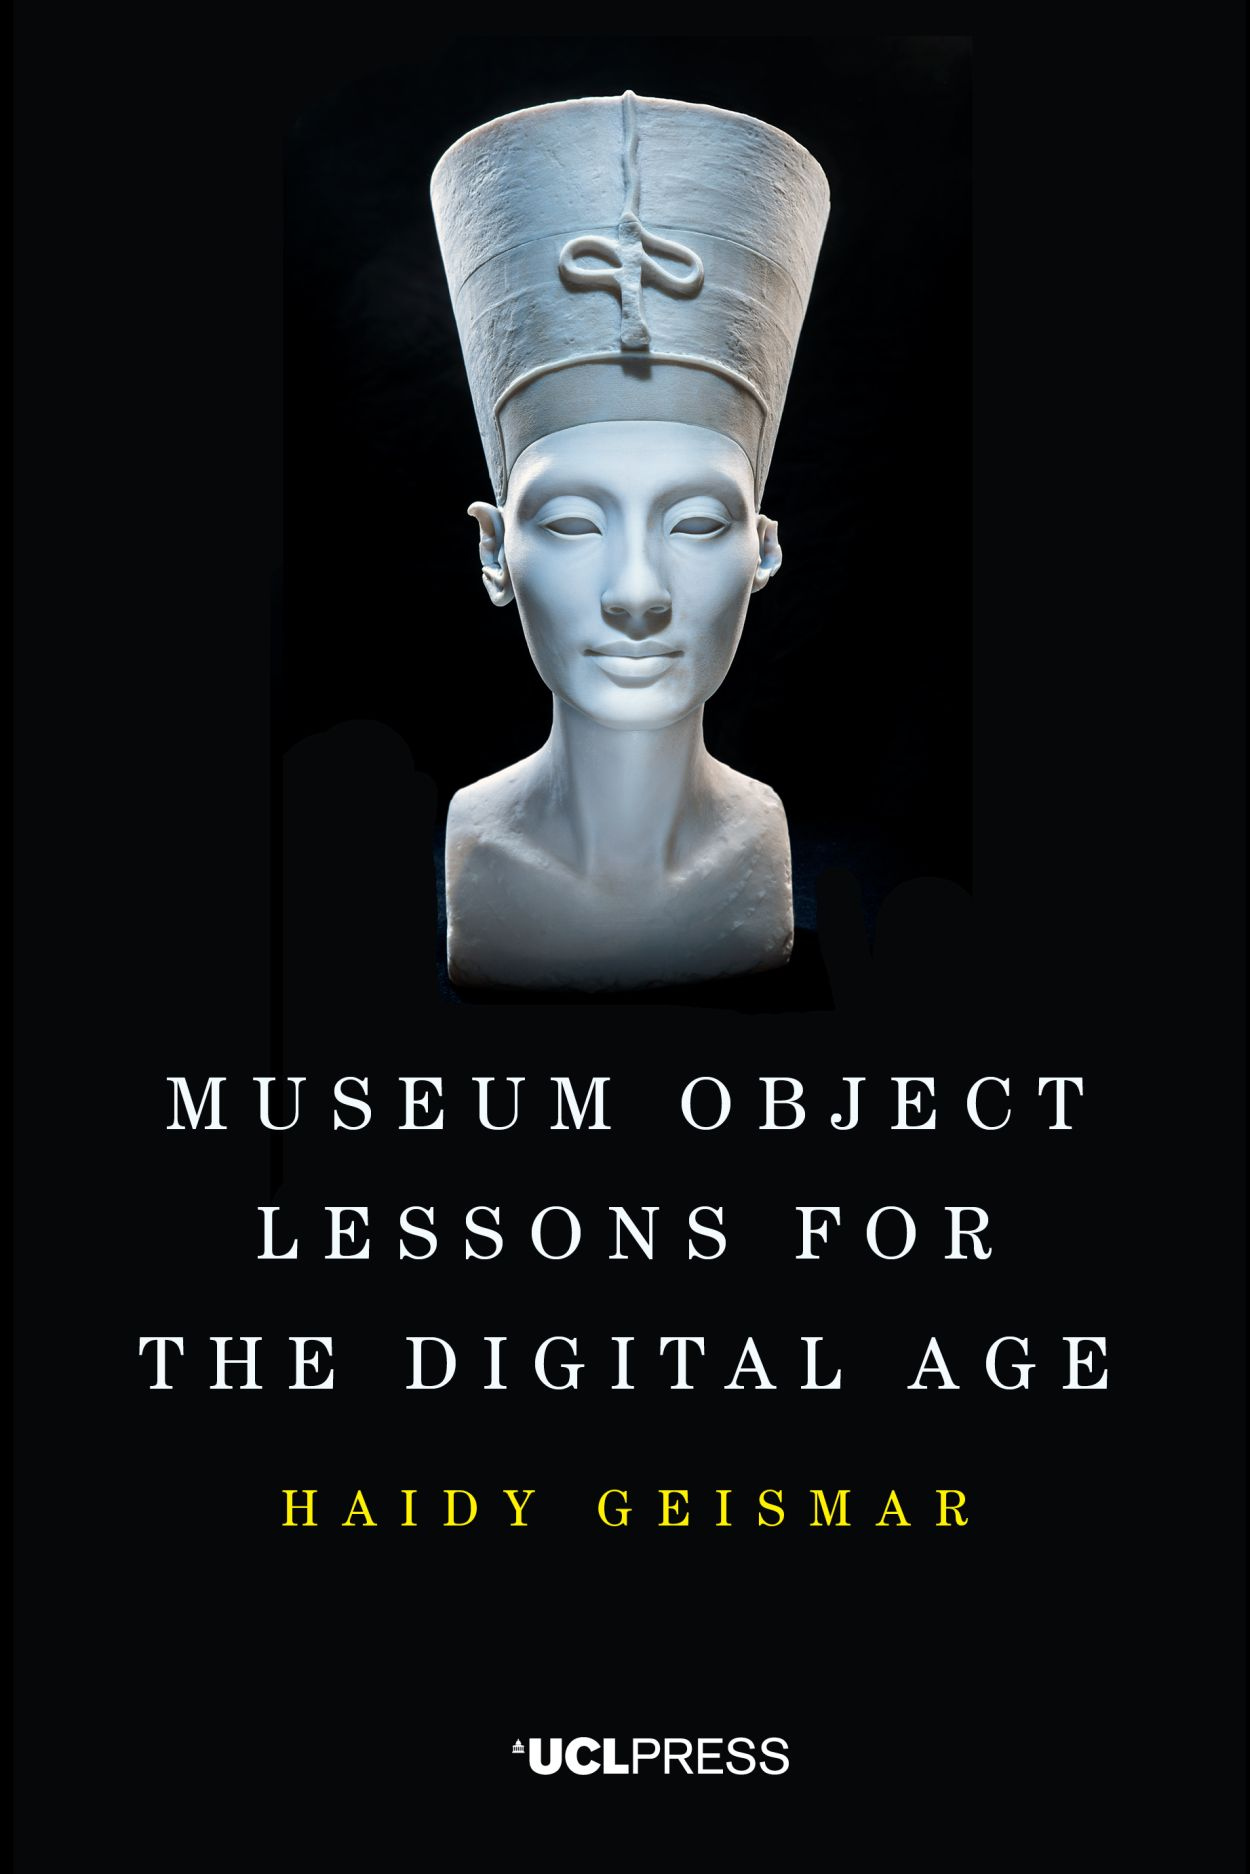 Museum Object Lessons for the Digital Age